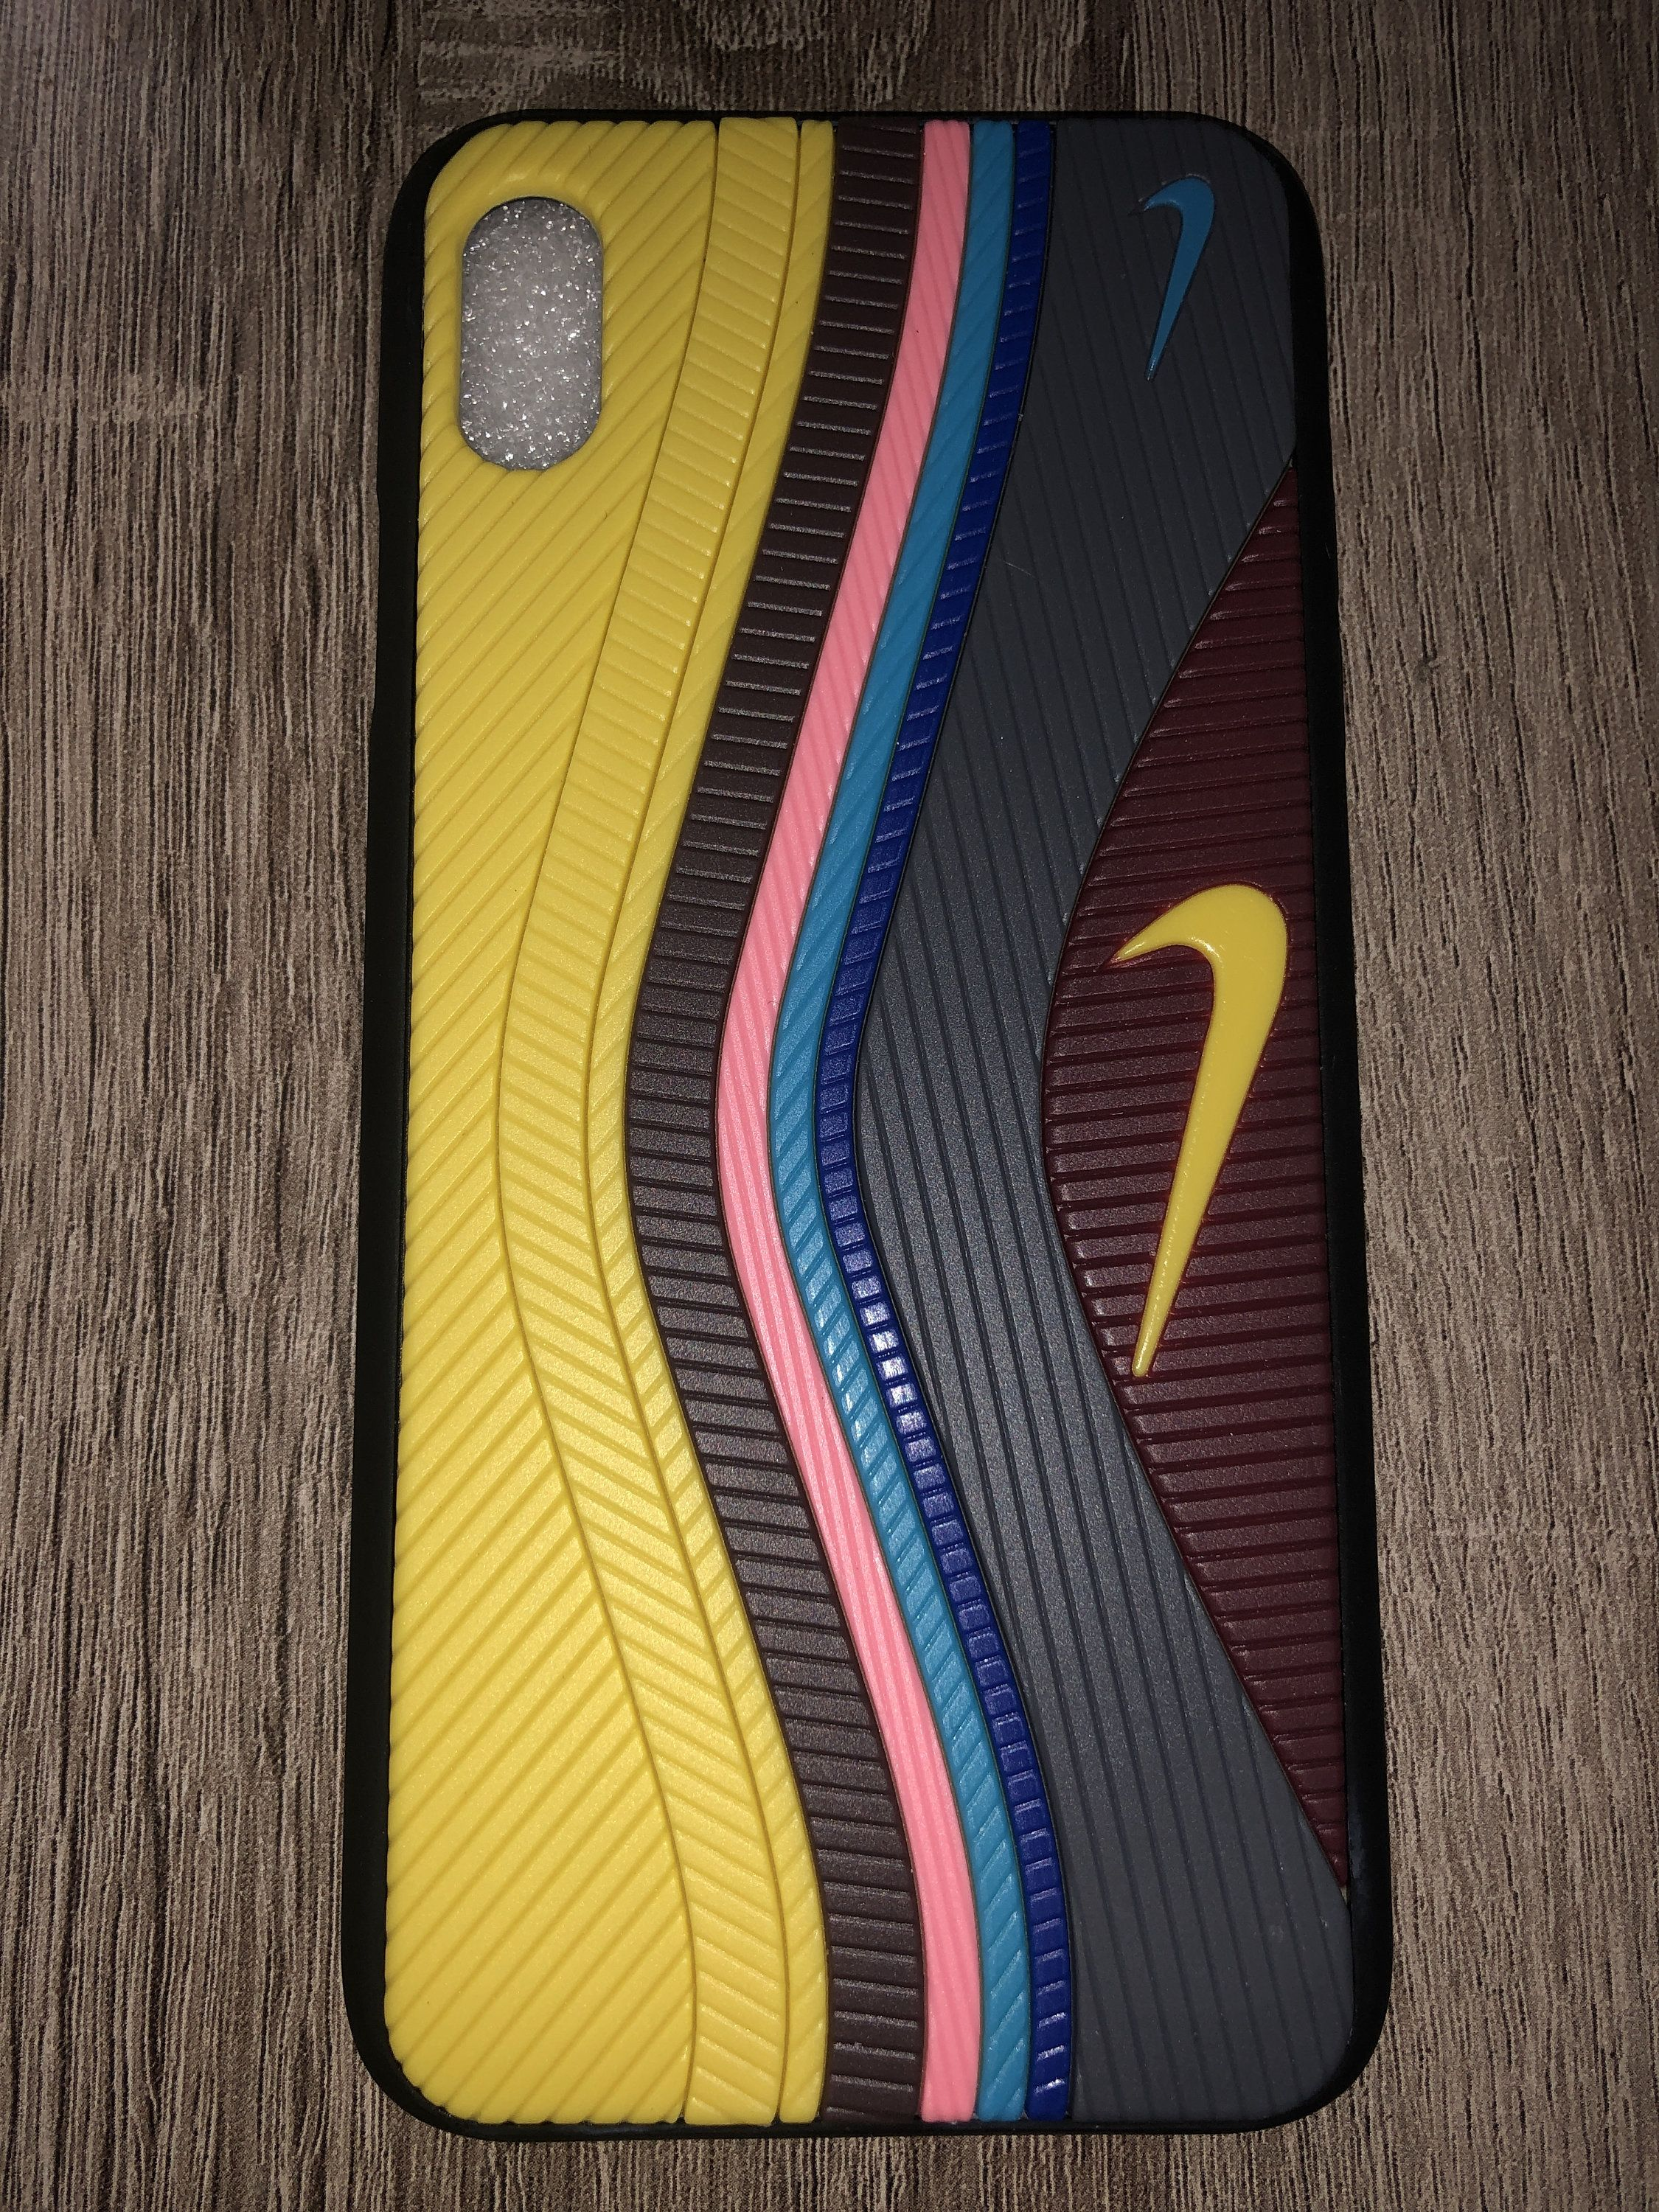 Air Max SW 1/97 Wotherspoon Inspired Case for iPhone